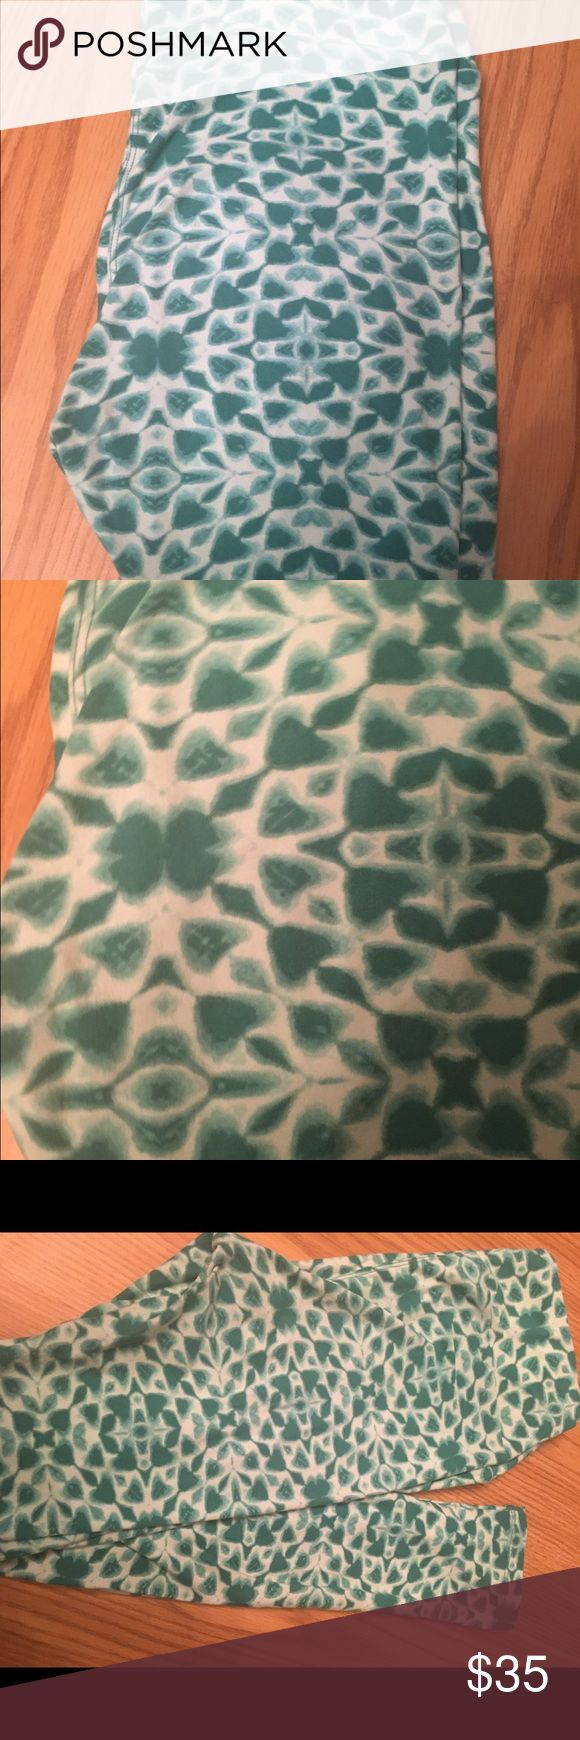 Lularoe Green Os Leggings For St Patrick's Day These are in EUC condition. They have been washed per LLR instructions. These would be great for St Patrick's' Day. OS size. Make me an offer 😀 LuLaRoe Pants